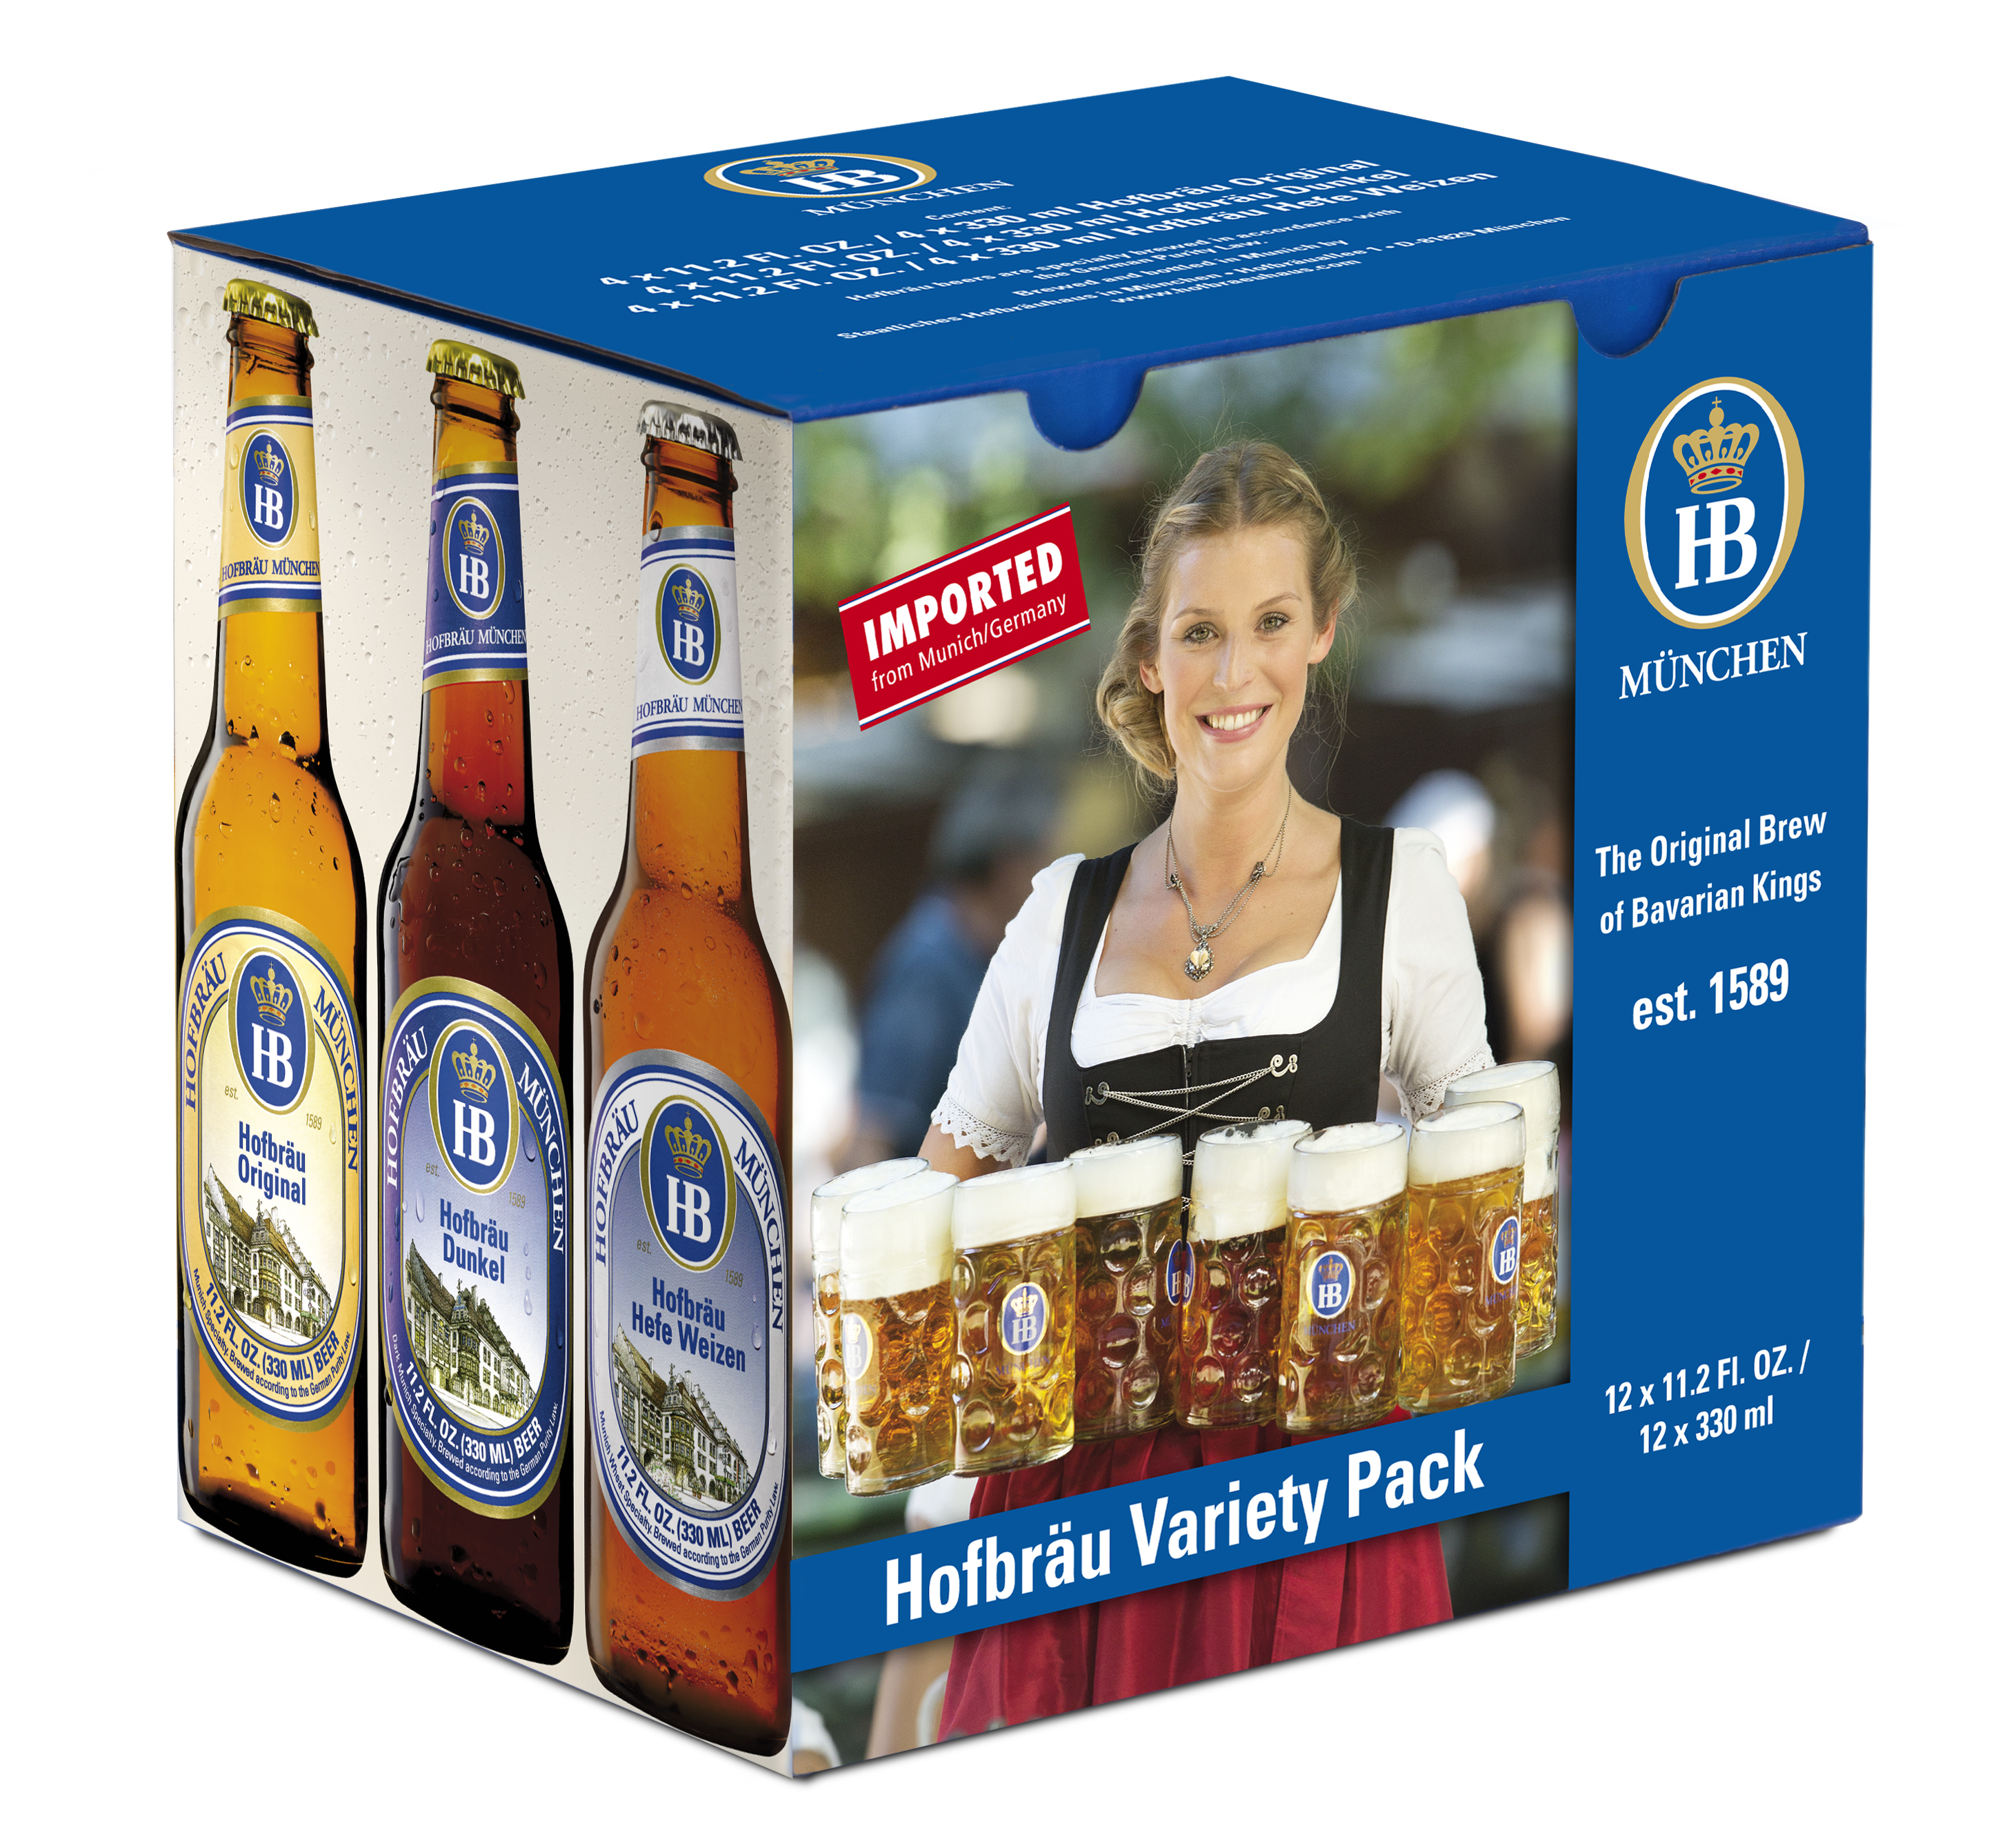 variety pack 12x330ml USA